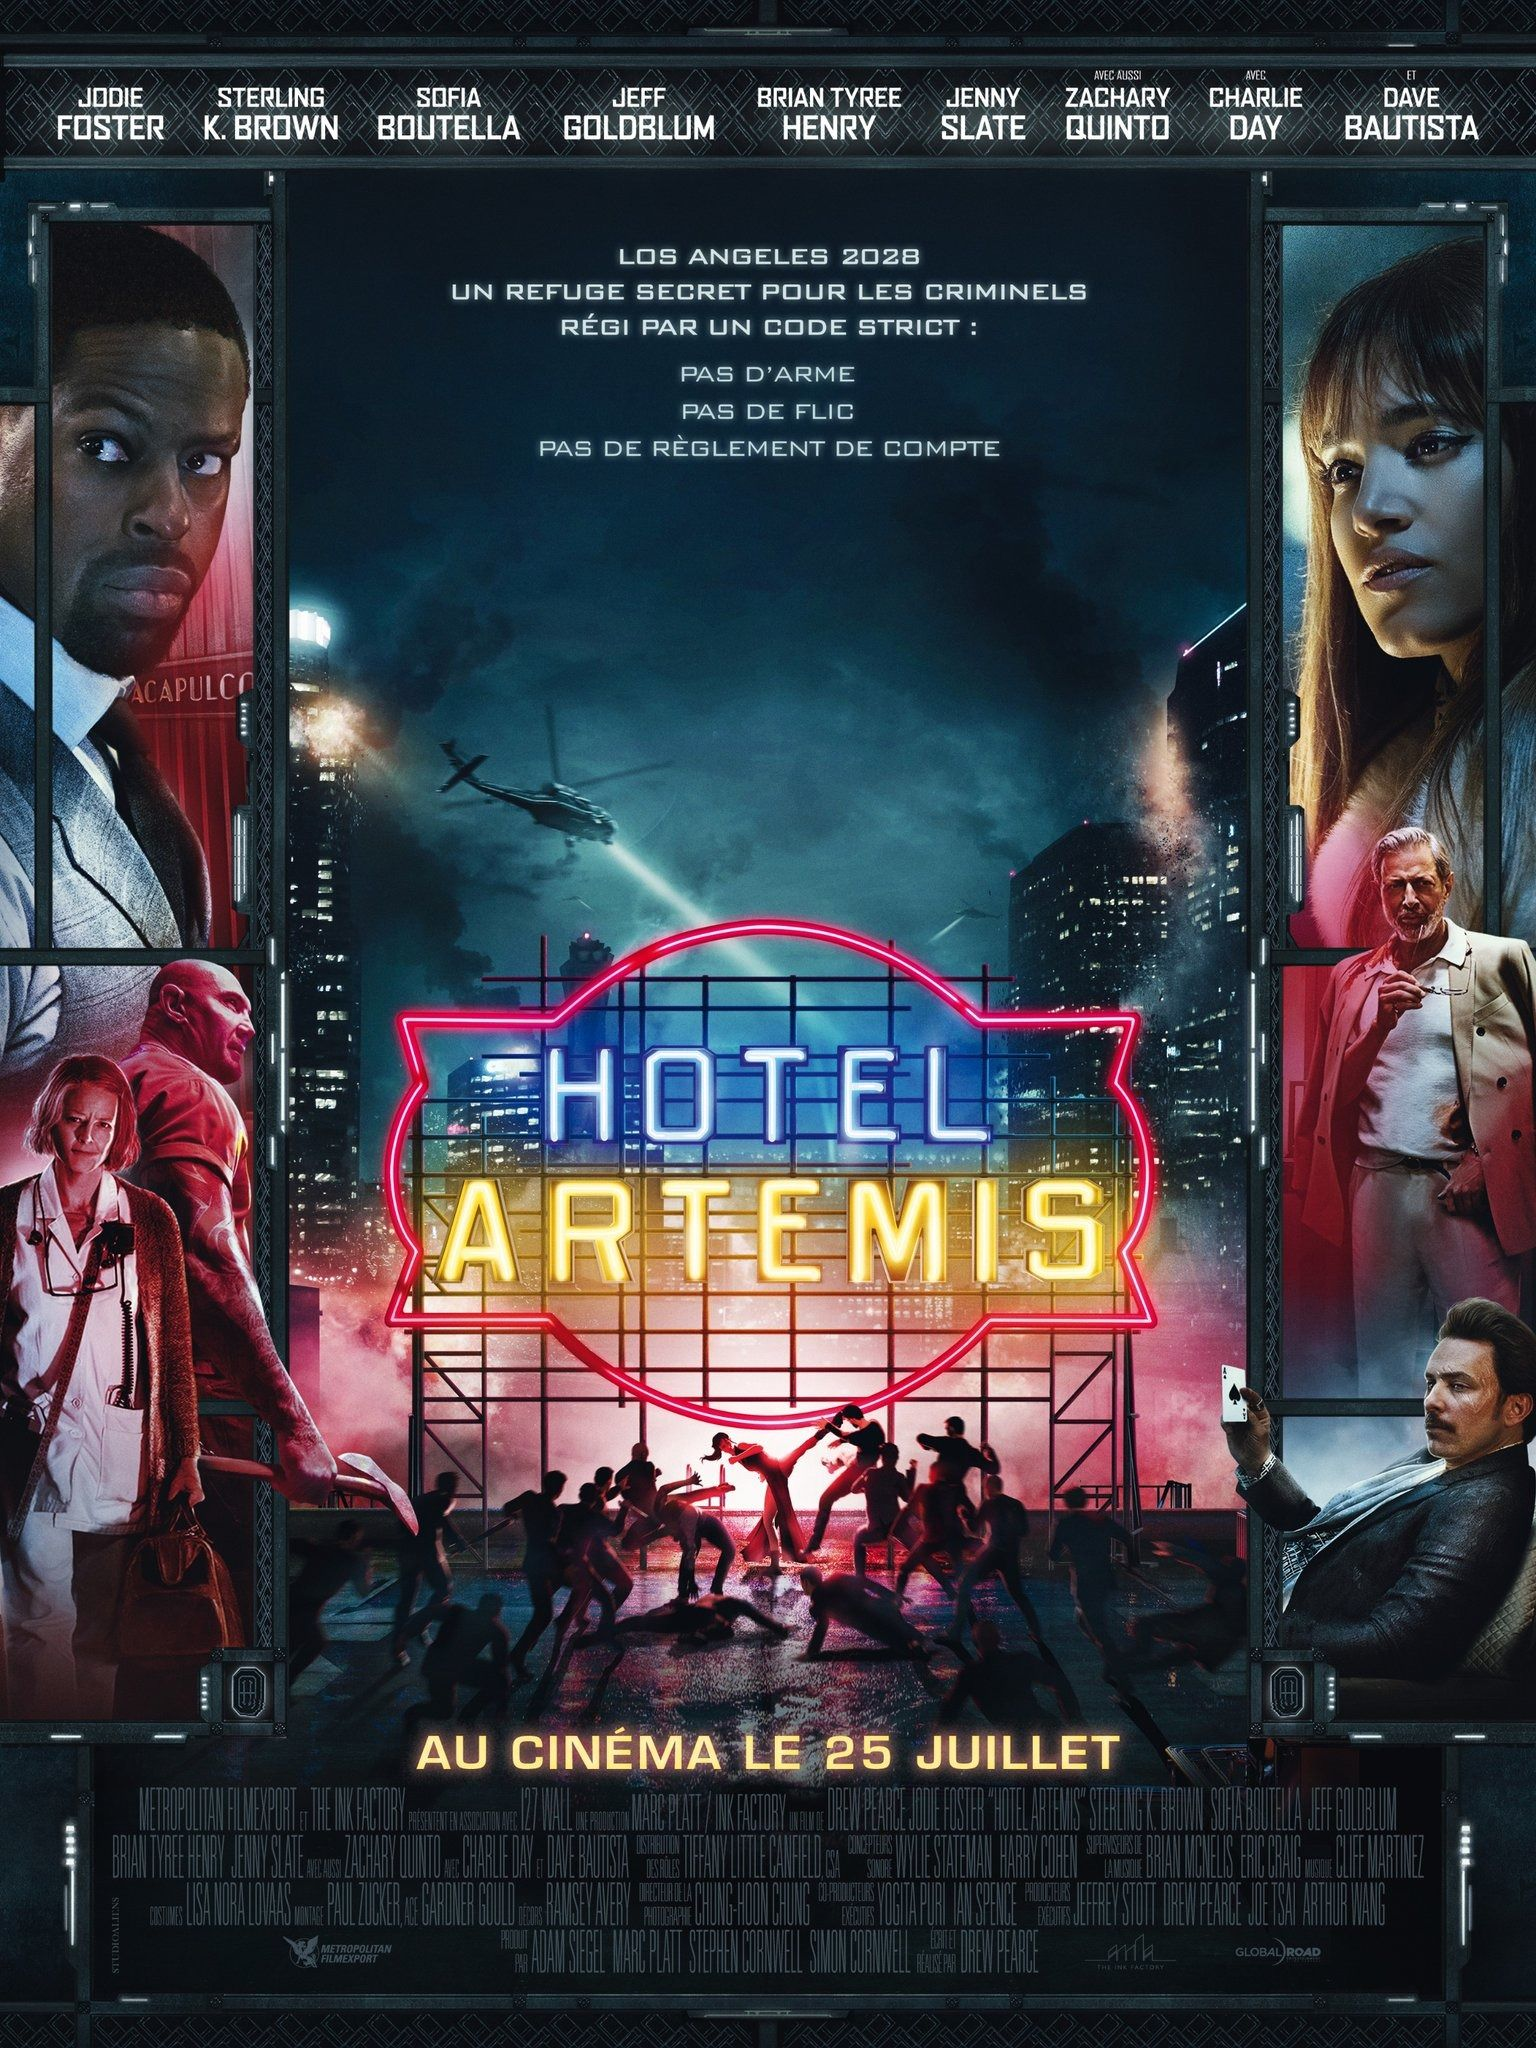 New French Poster For Hotel Artemis Peliculas Completas Poster De Peliculas Peliculas